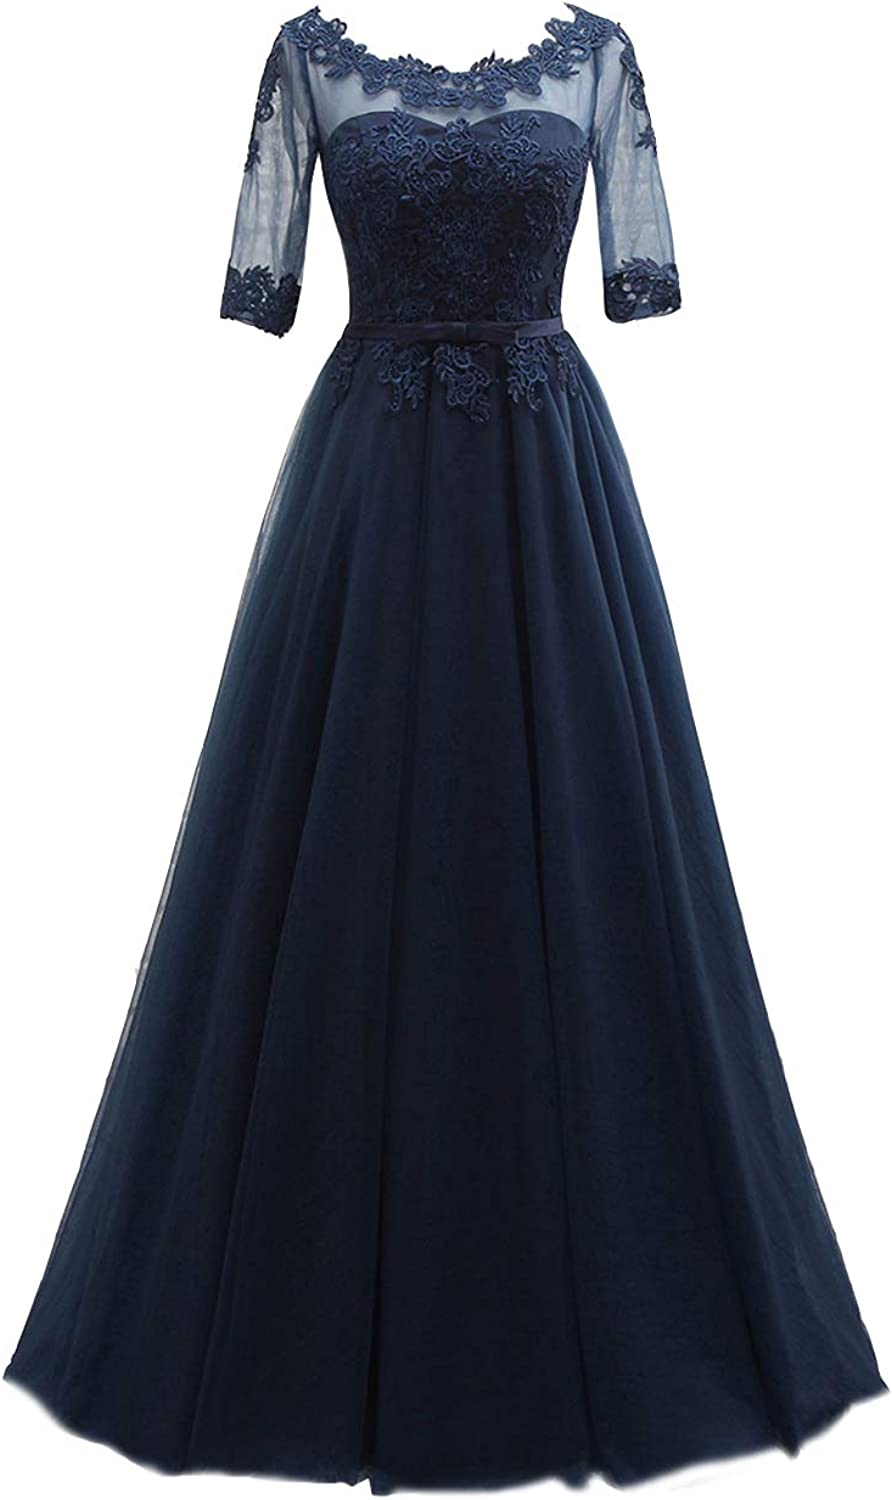 Cdress Lace Prom Dresses Long Tulle Evening Formal Gowns Appliques Wedding Party Dress Short Sleeves